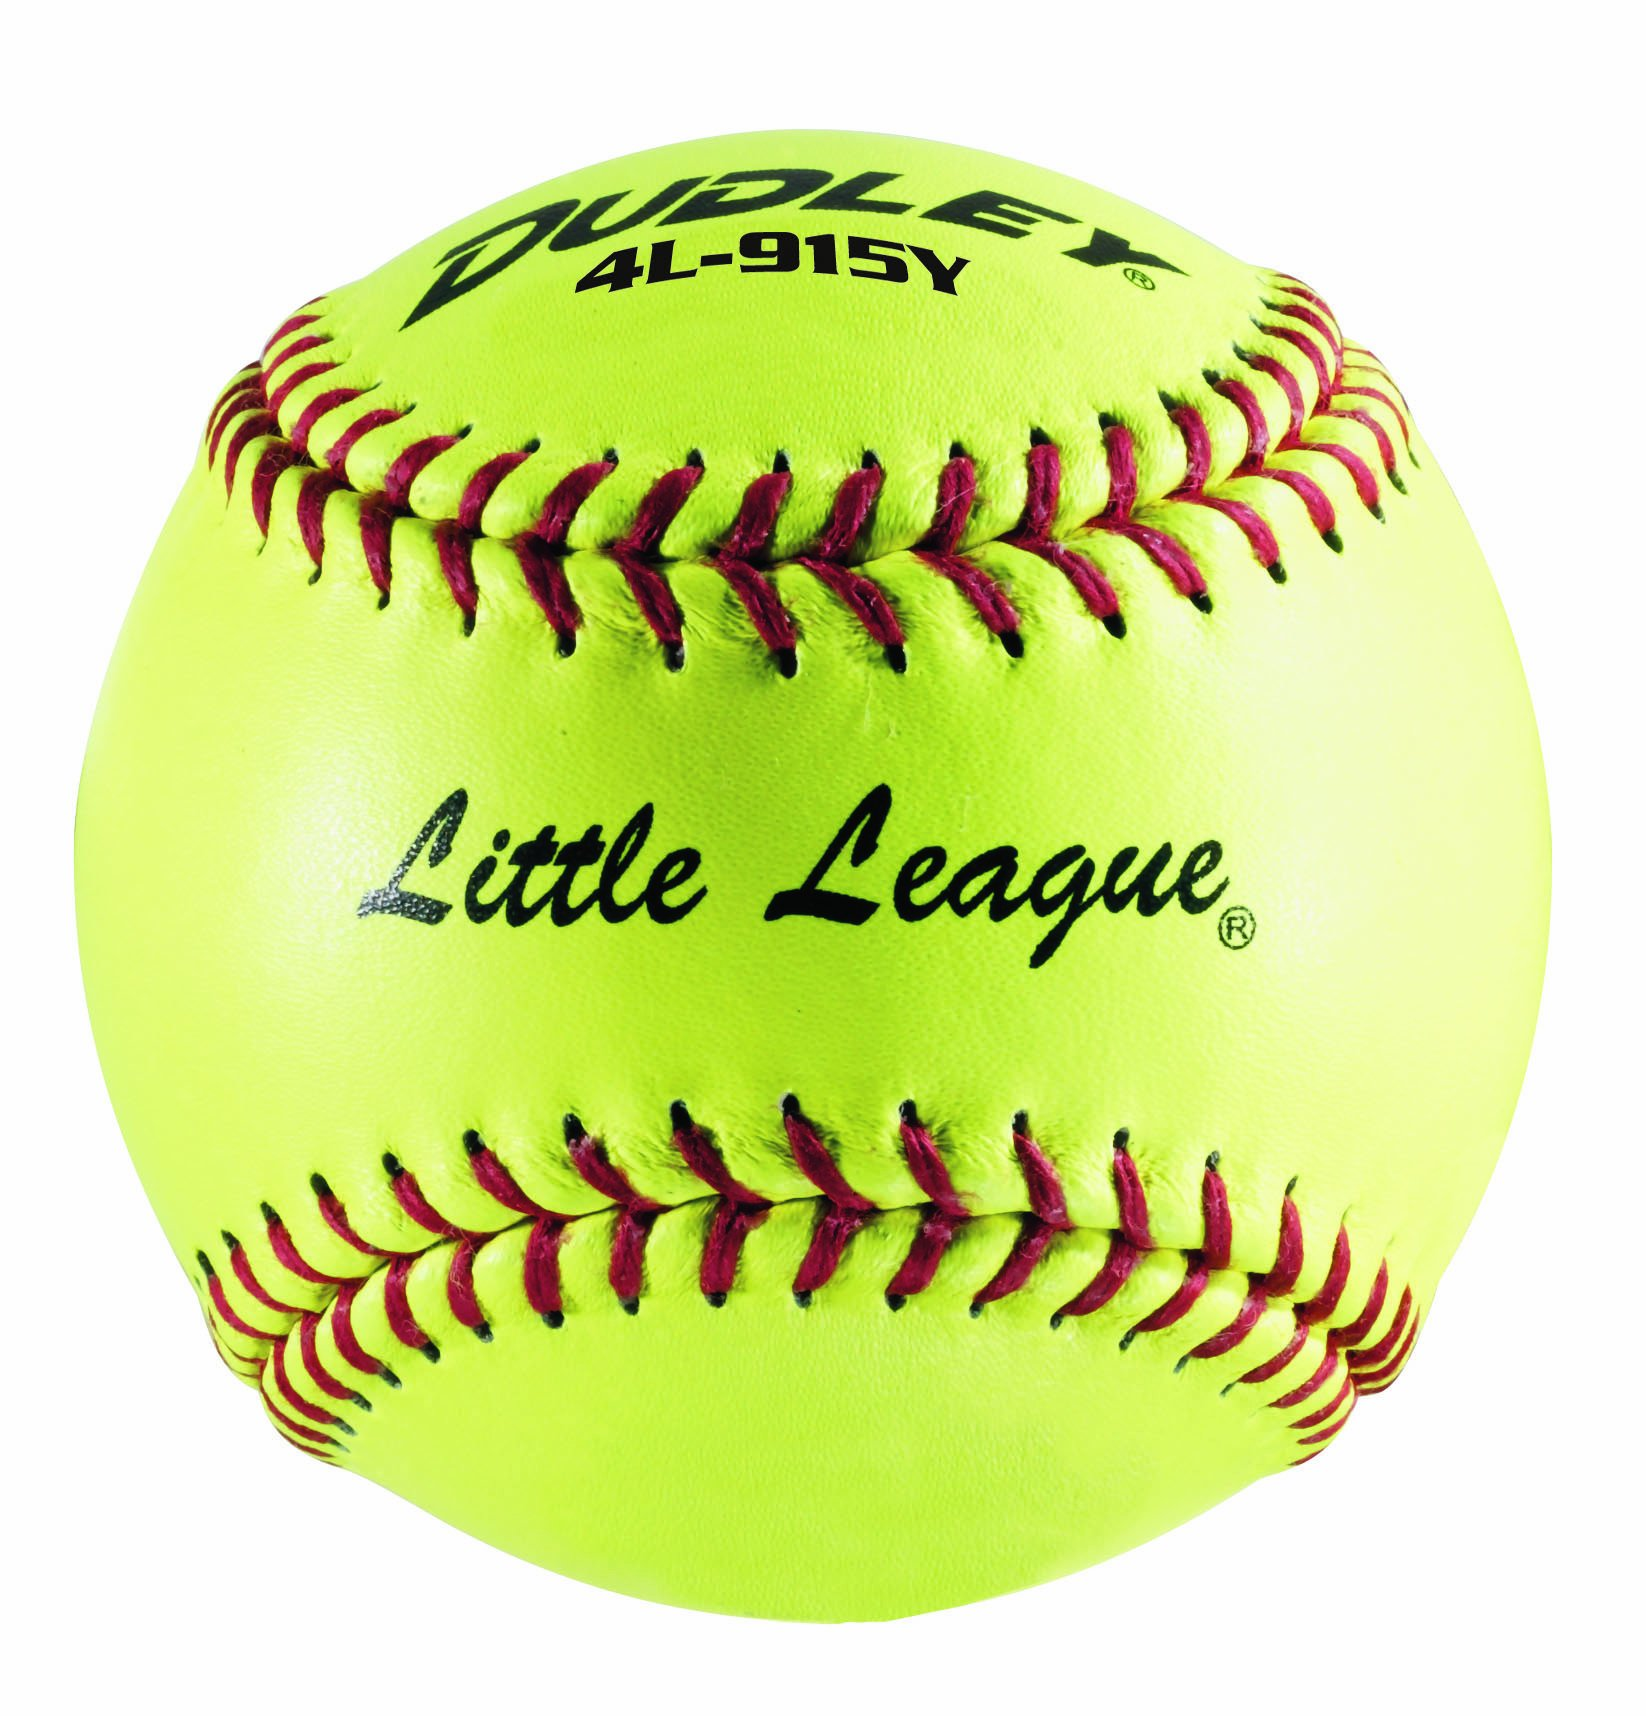 Dudley Little League SY Fast Pitch Synthetic Soft Ball (12-Inch) - Dozen by Dudley (Image #1)